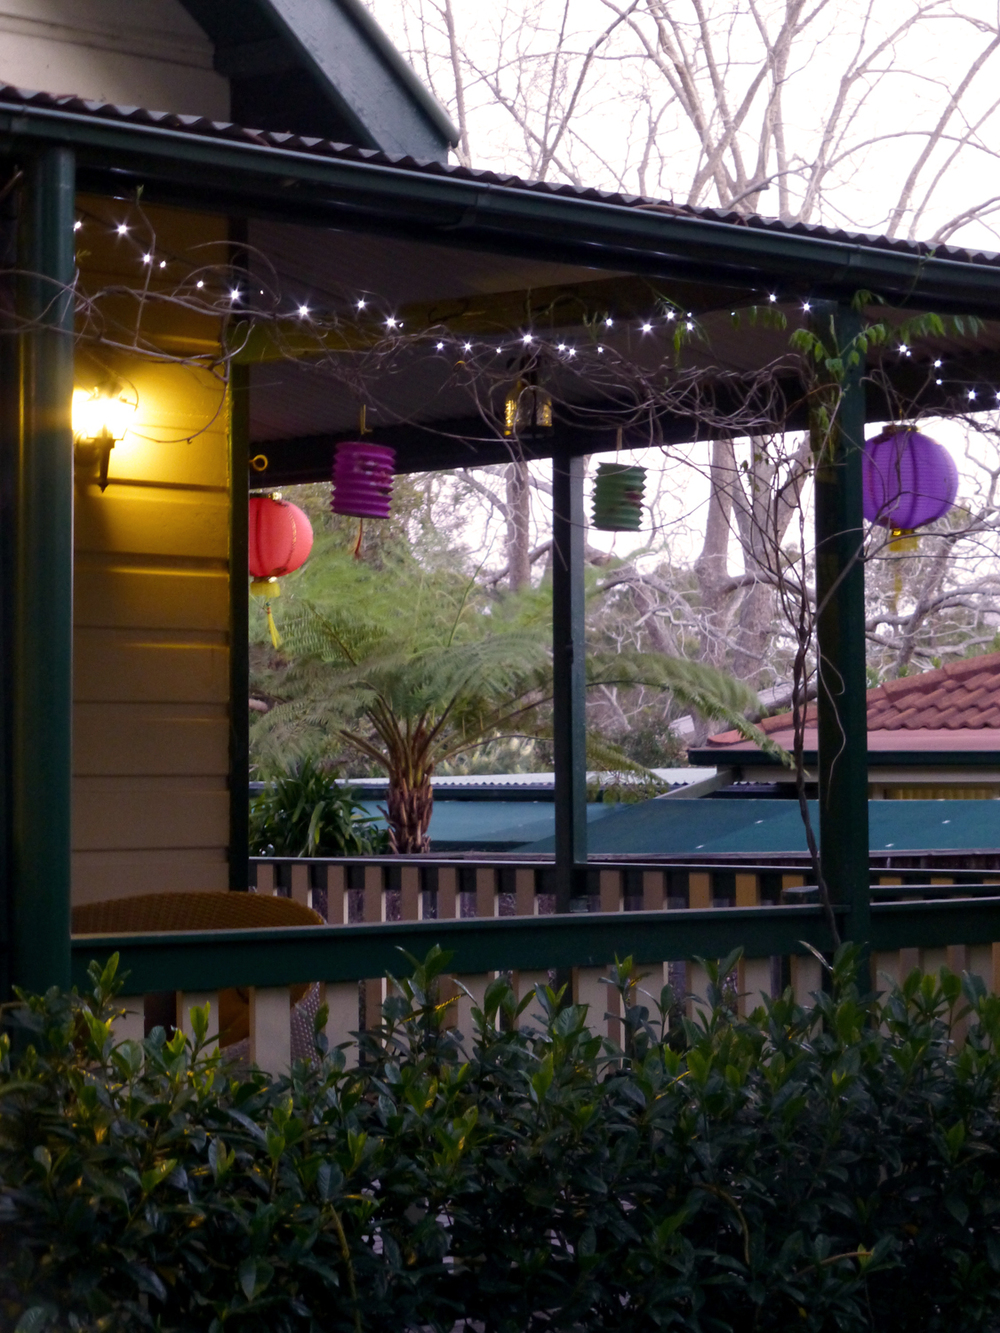 The verandah strung with paper lanterns